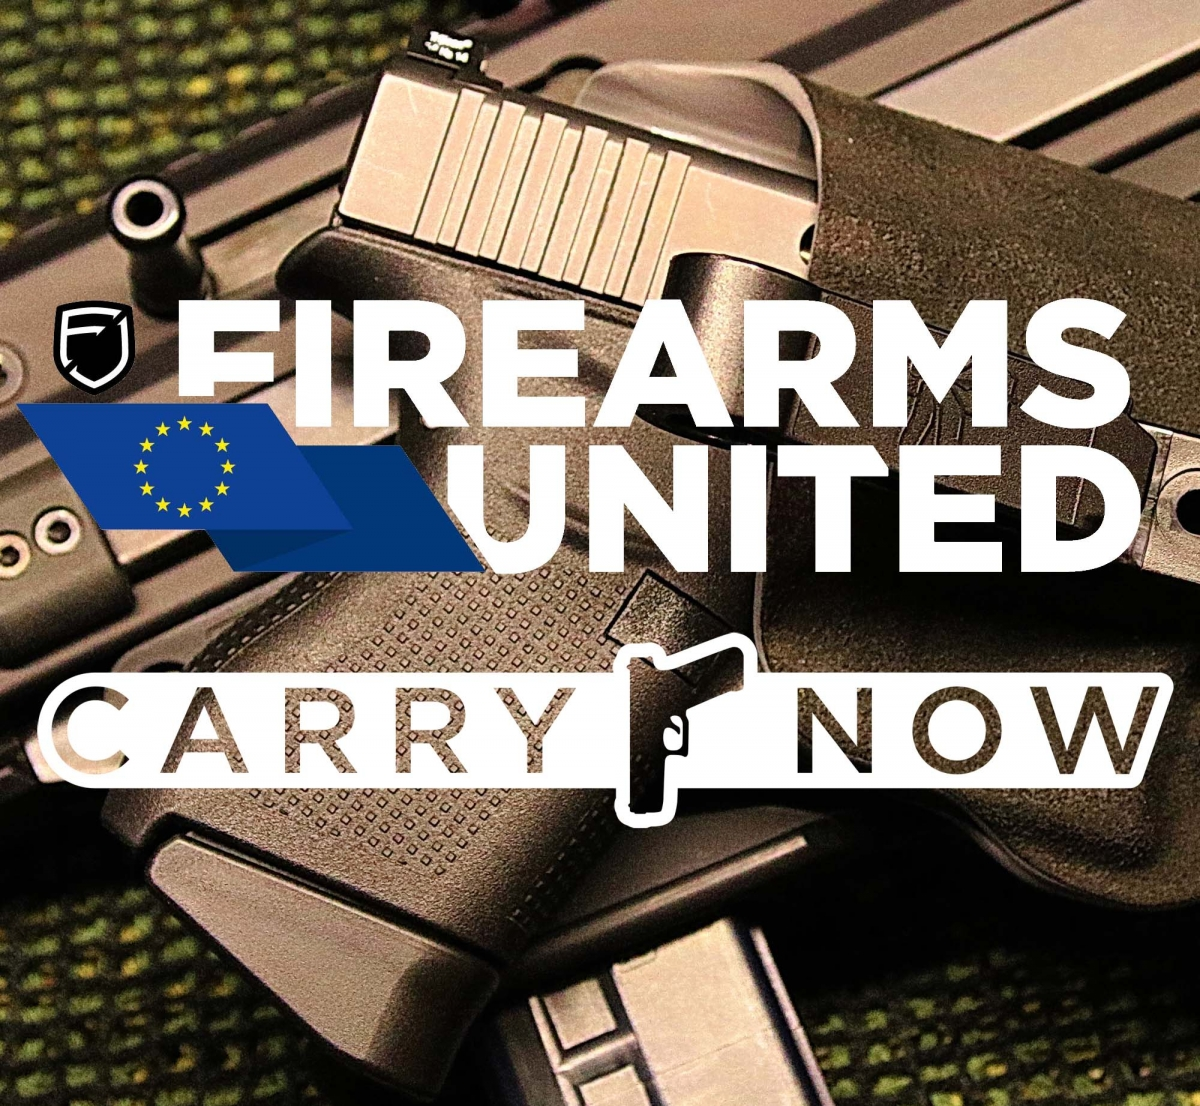 CarryNow.eu is a Firearms United initiative